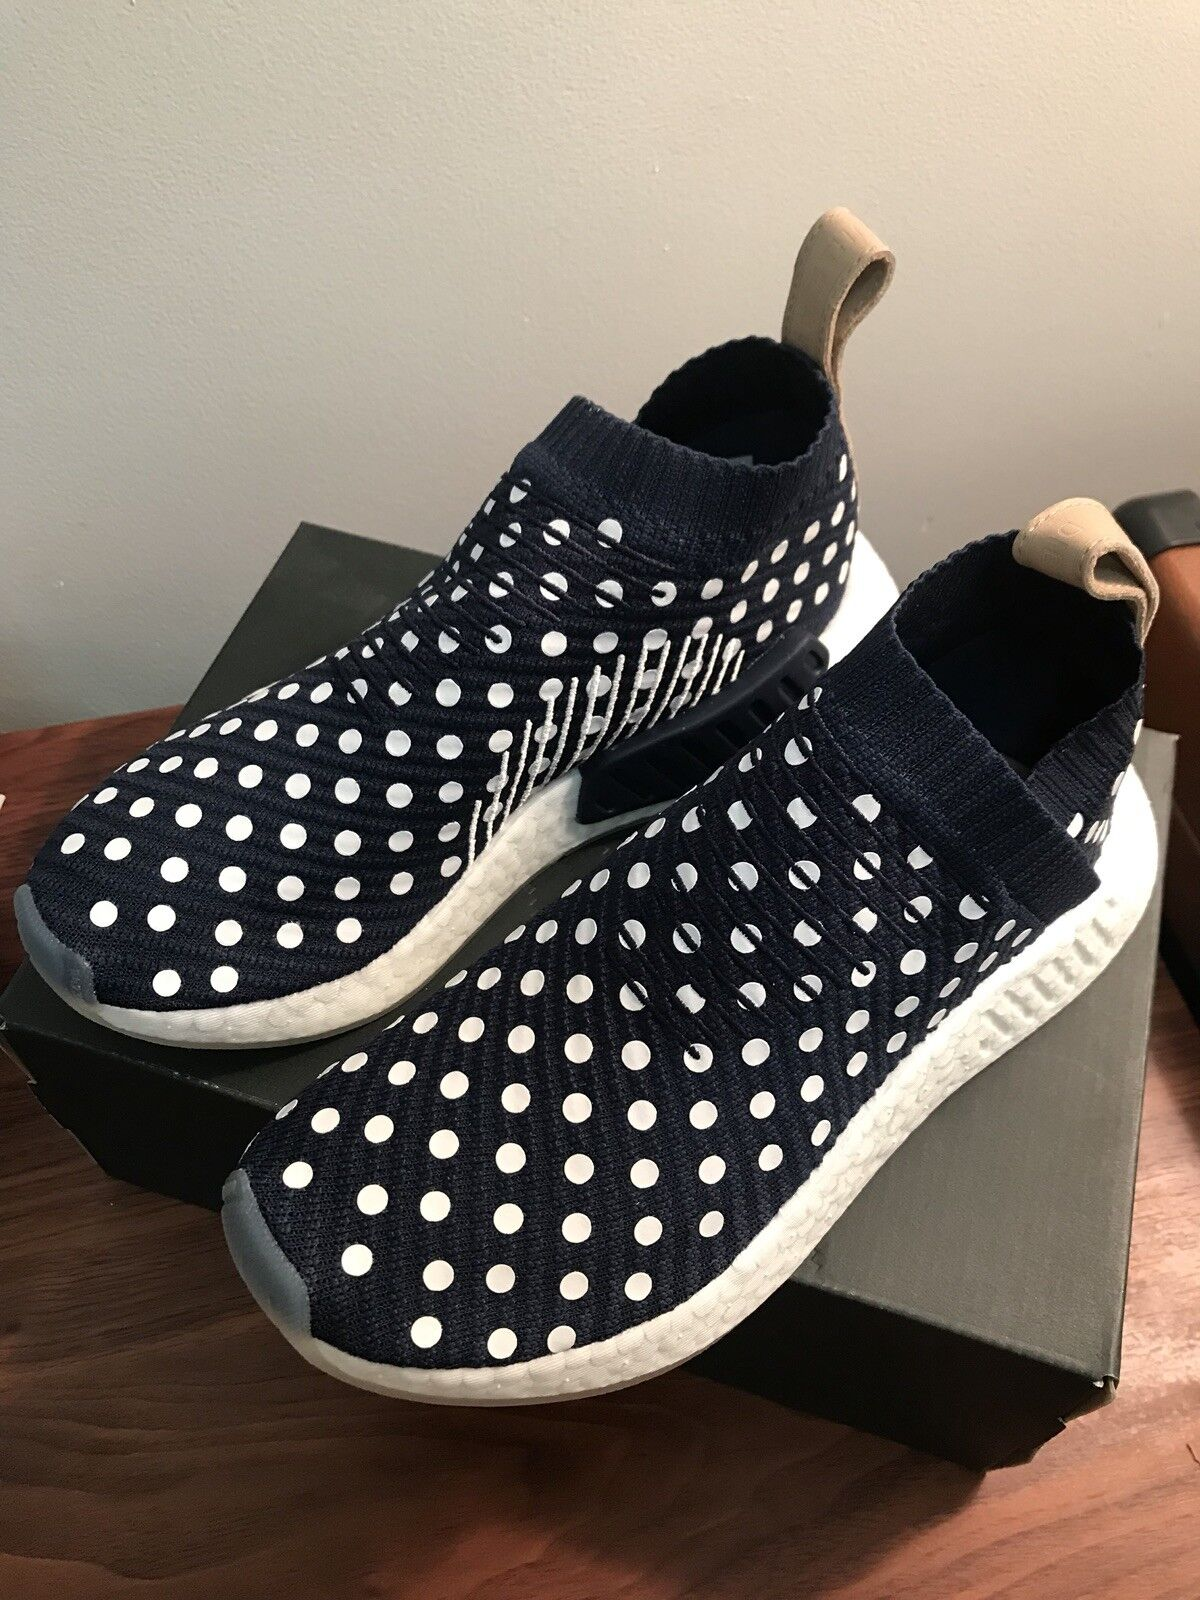 New Adidas NMD CS2 Polka Dot City Sock Navy Boost Ronin Pack Size 6.5 Deadstock